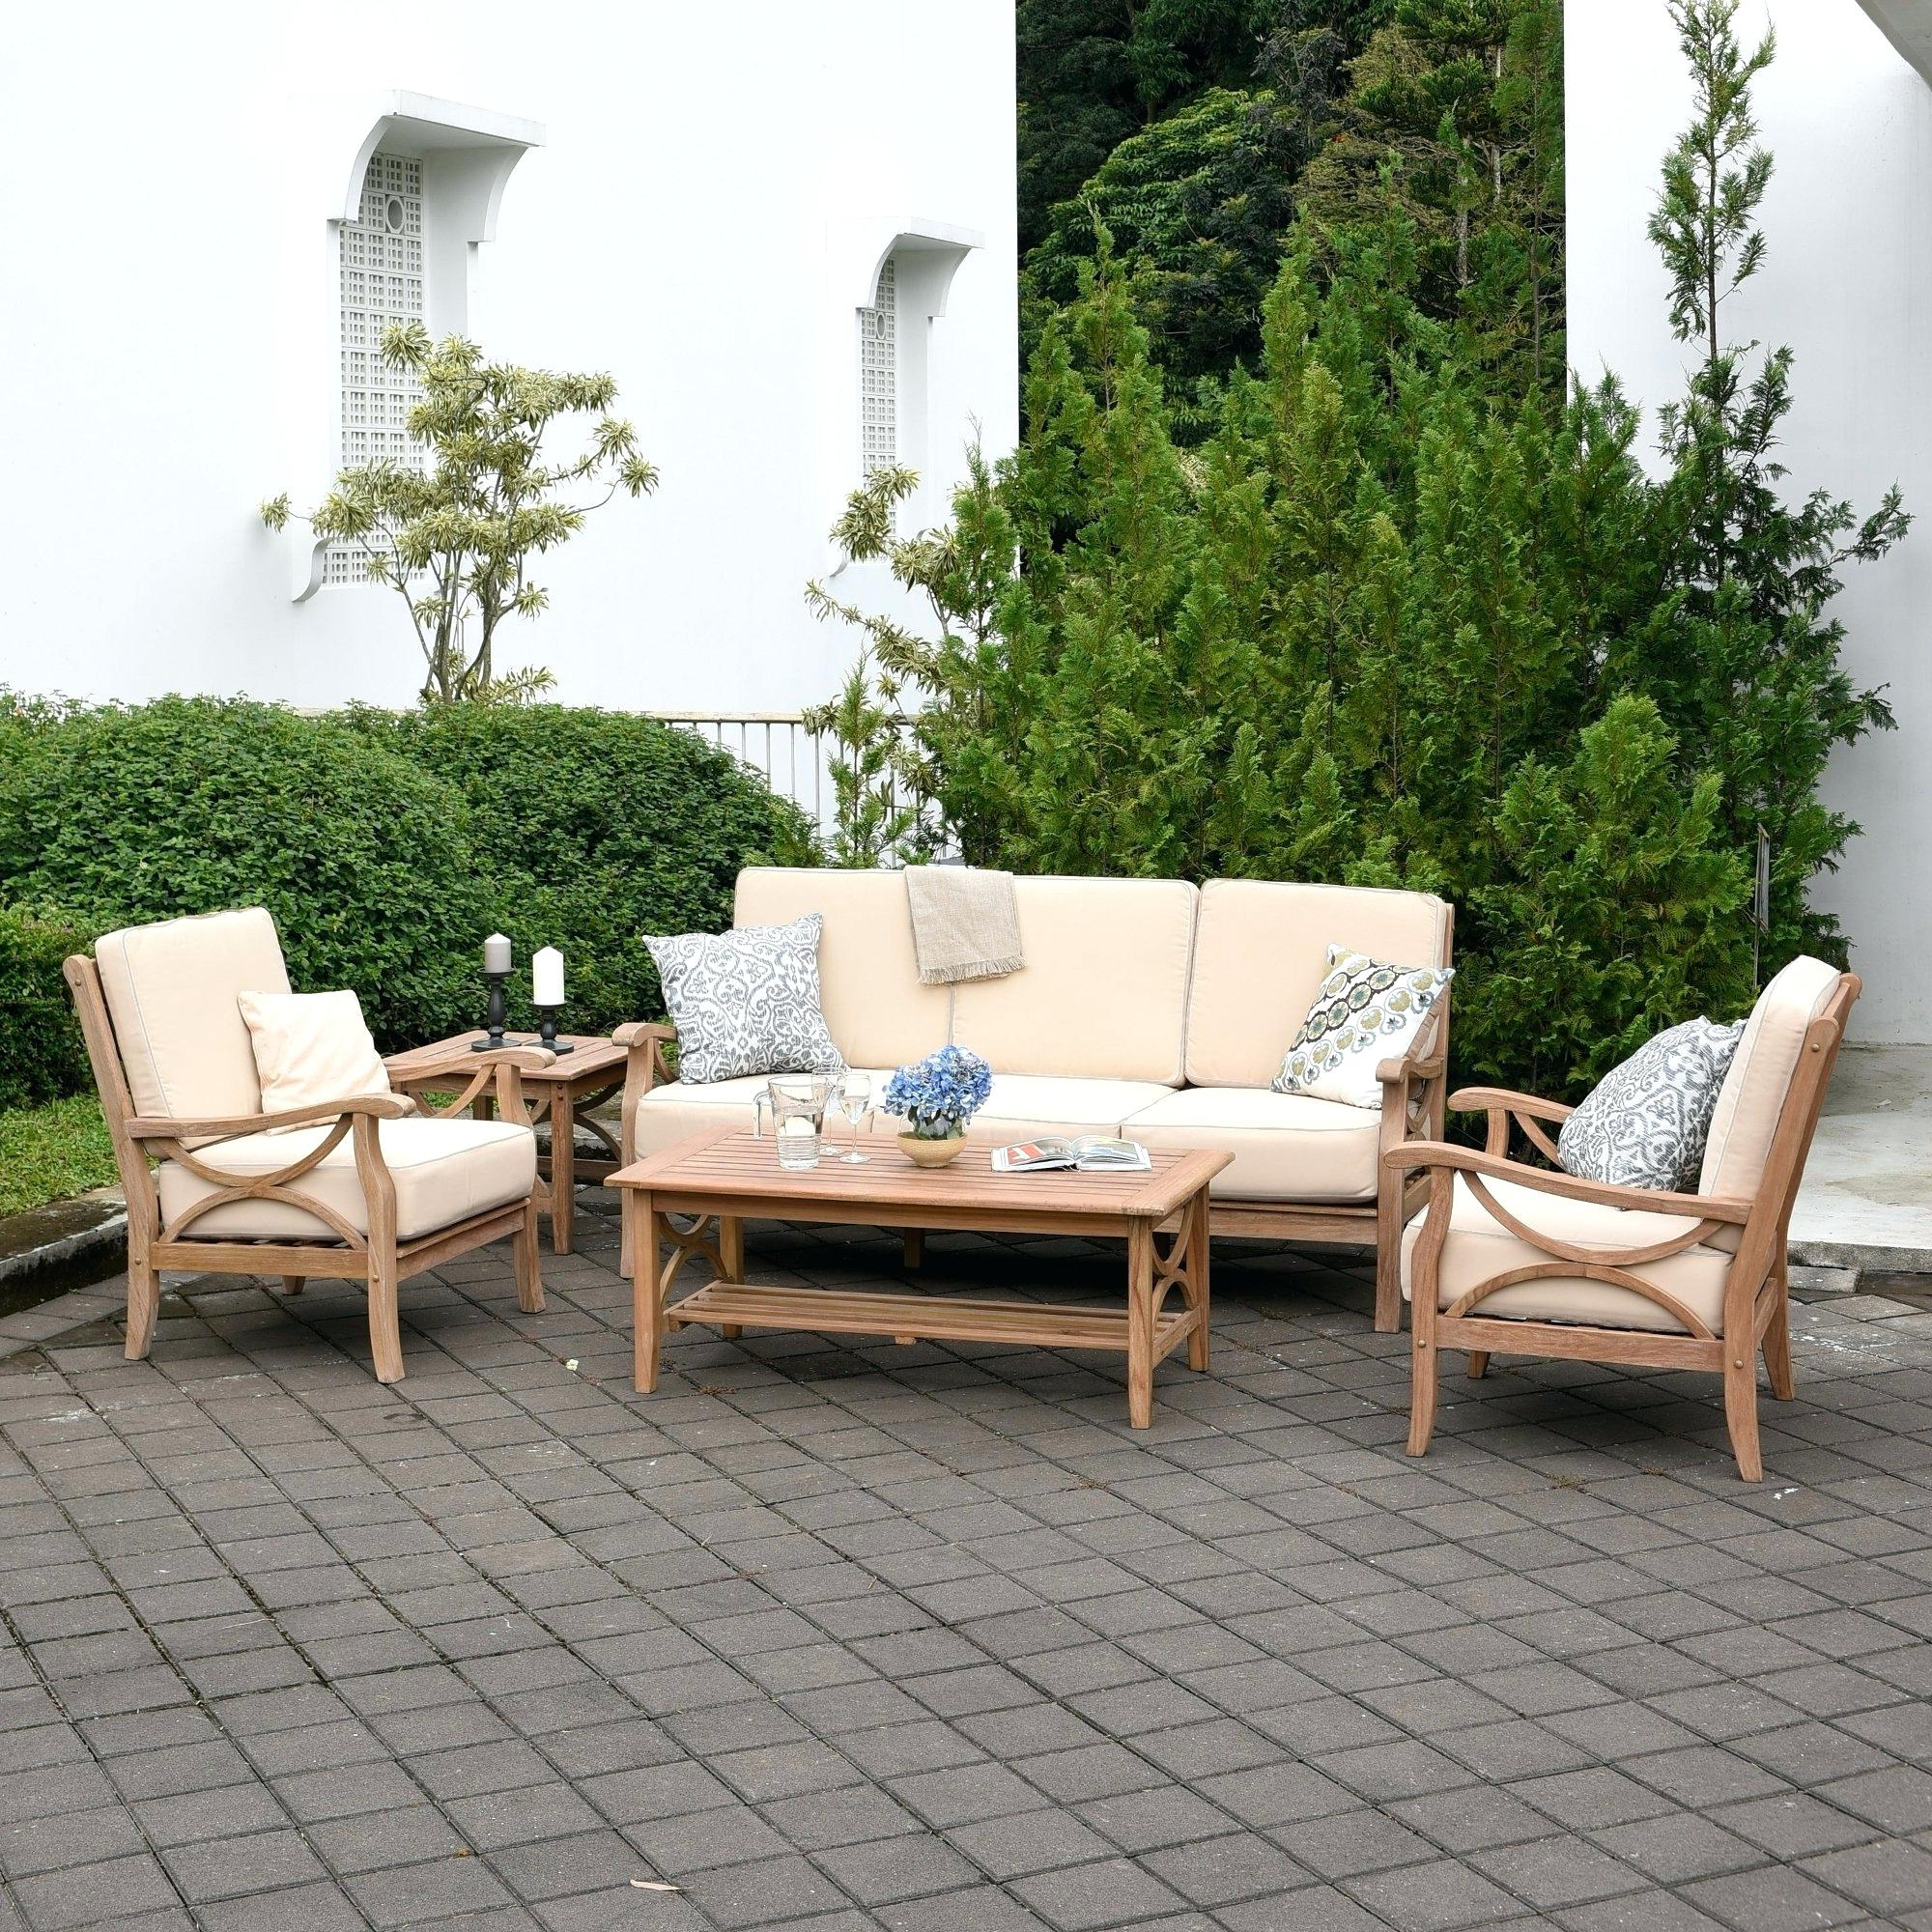 Most Current Summerton Teak Patio Sofas With Cushions Pertaining To Teak Patio Chairs – Appyhomes (View 18 of 20)